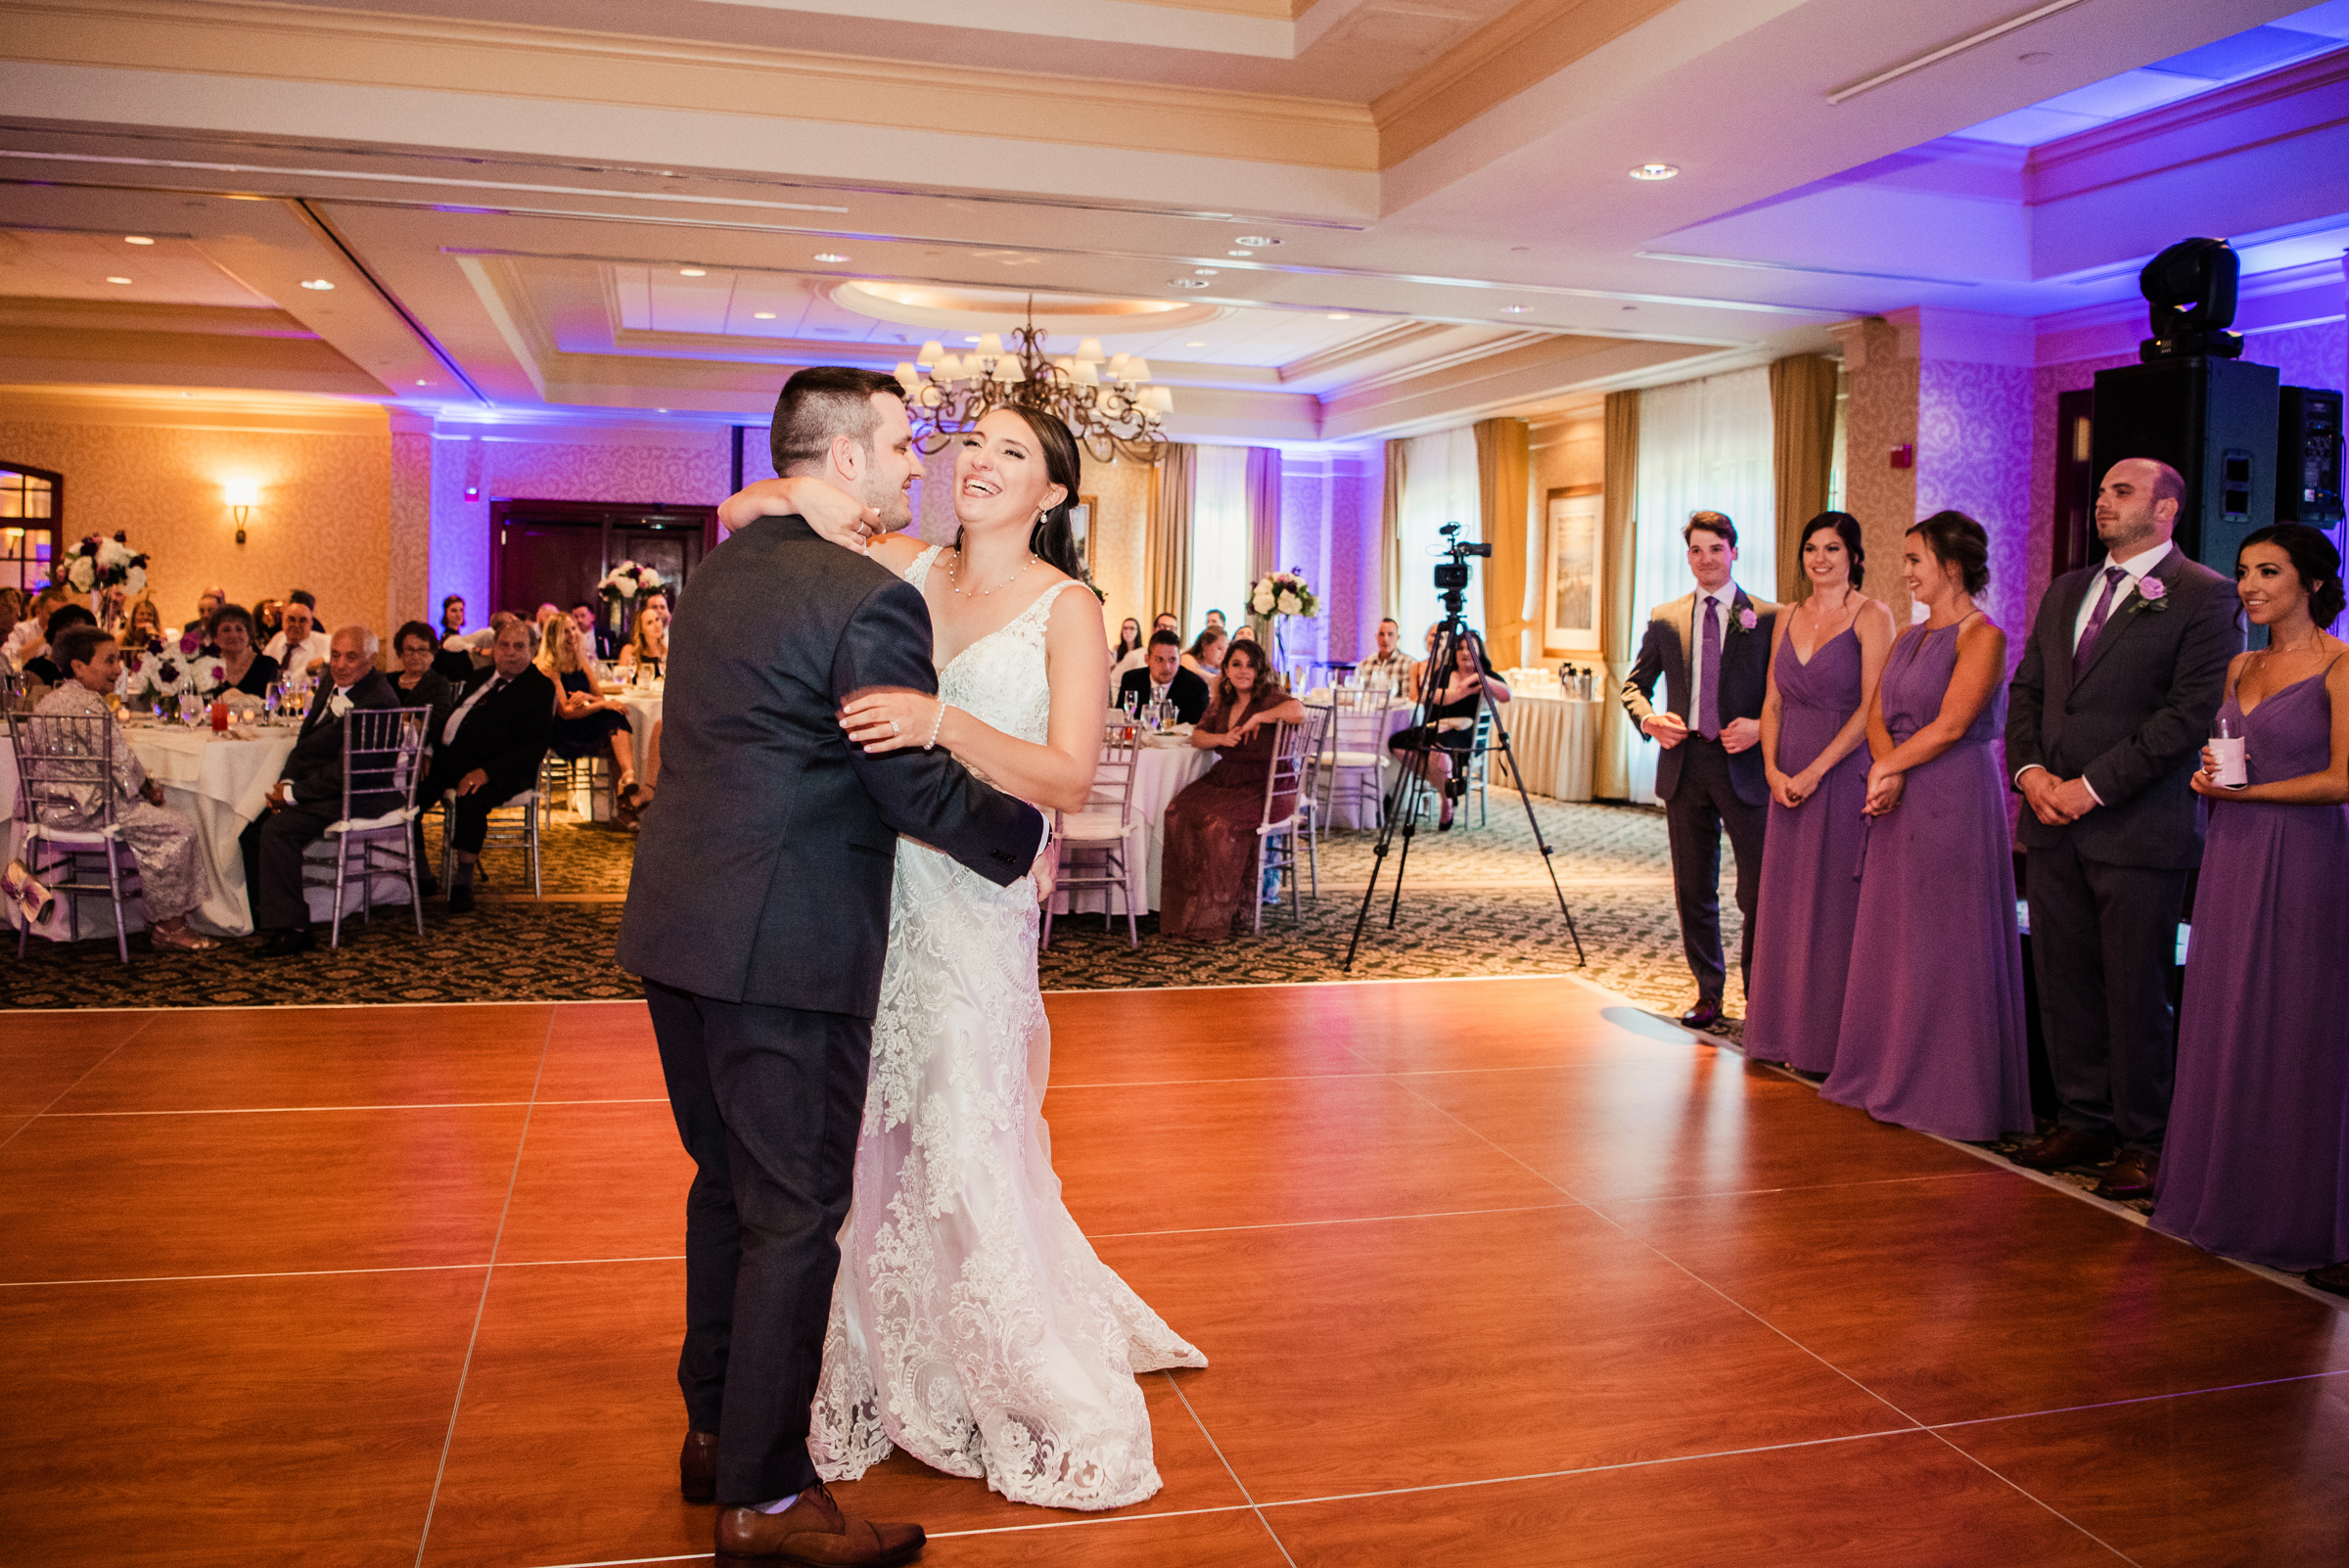 Turning_Stone_Casino_Resort_Central_NY_Wedding_JILL_STUDIO_Rochester_NY_Photographer_DSC_1869.jpg